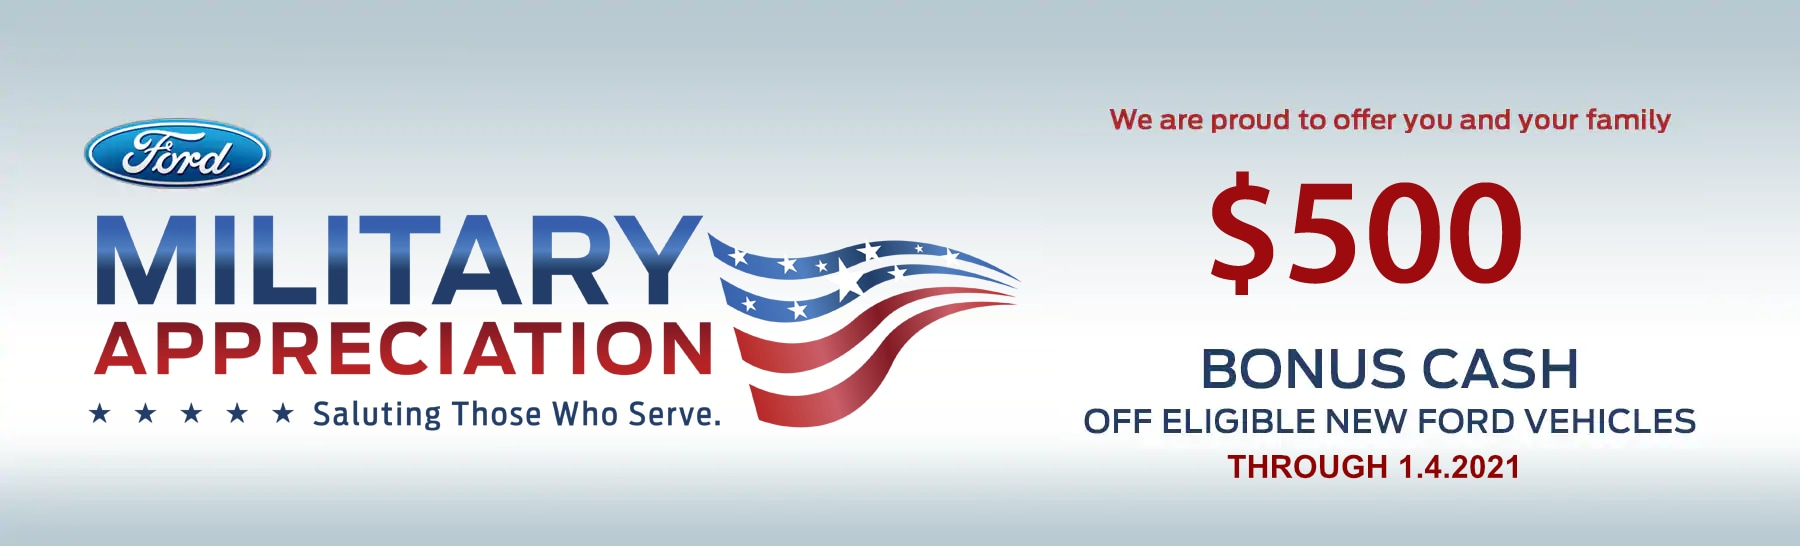 Military Appreciation Rebate 2019 - We are proud to offer $500 Bonus Cash off eligible new Ford vehicles through January 4, 2021